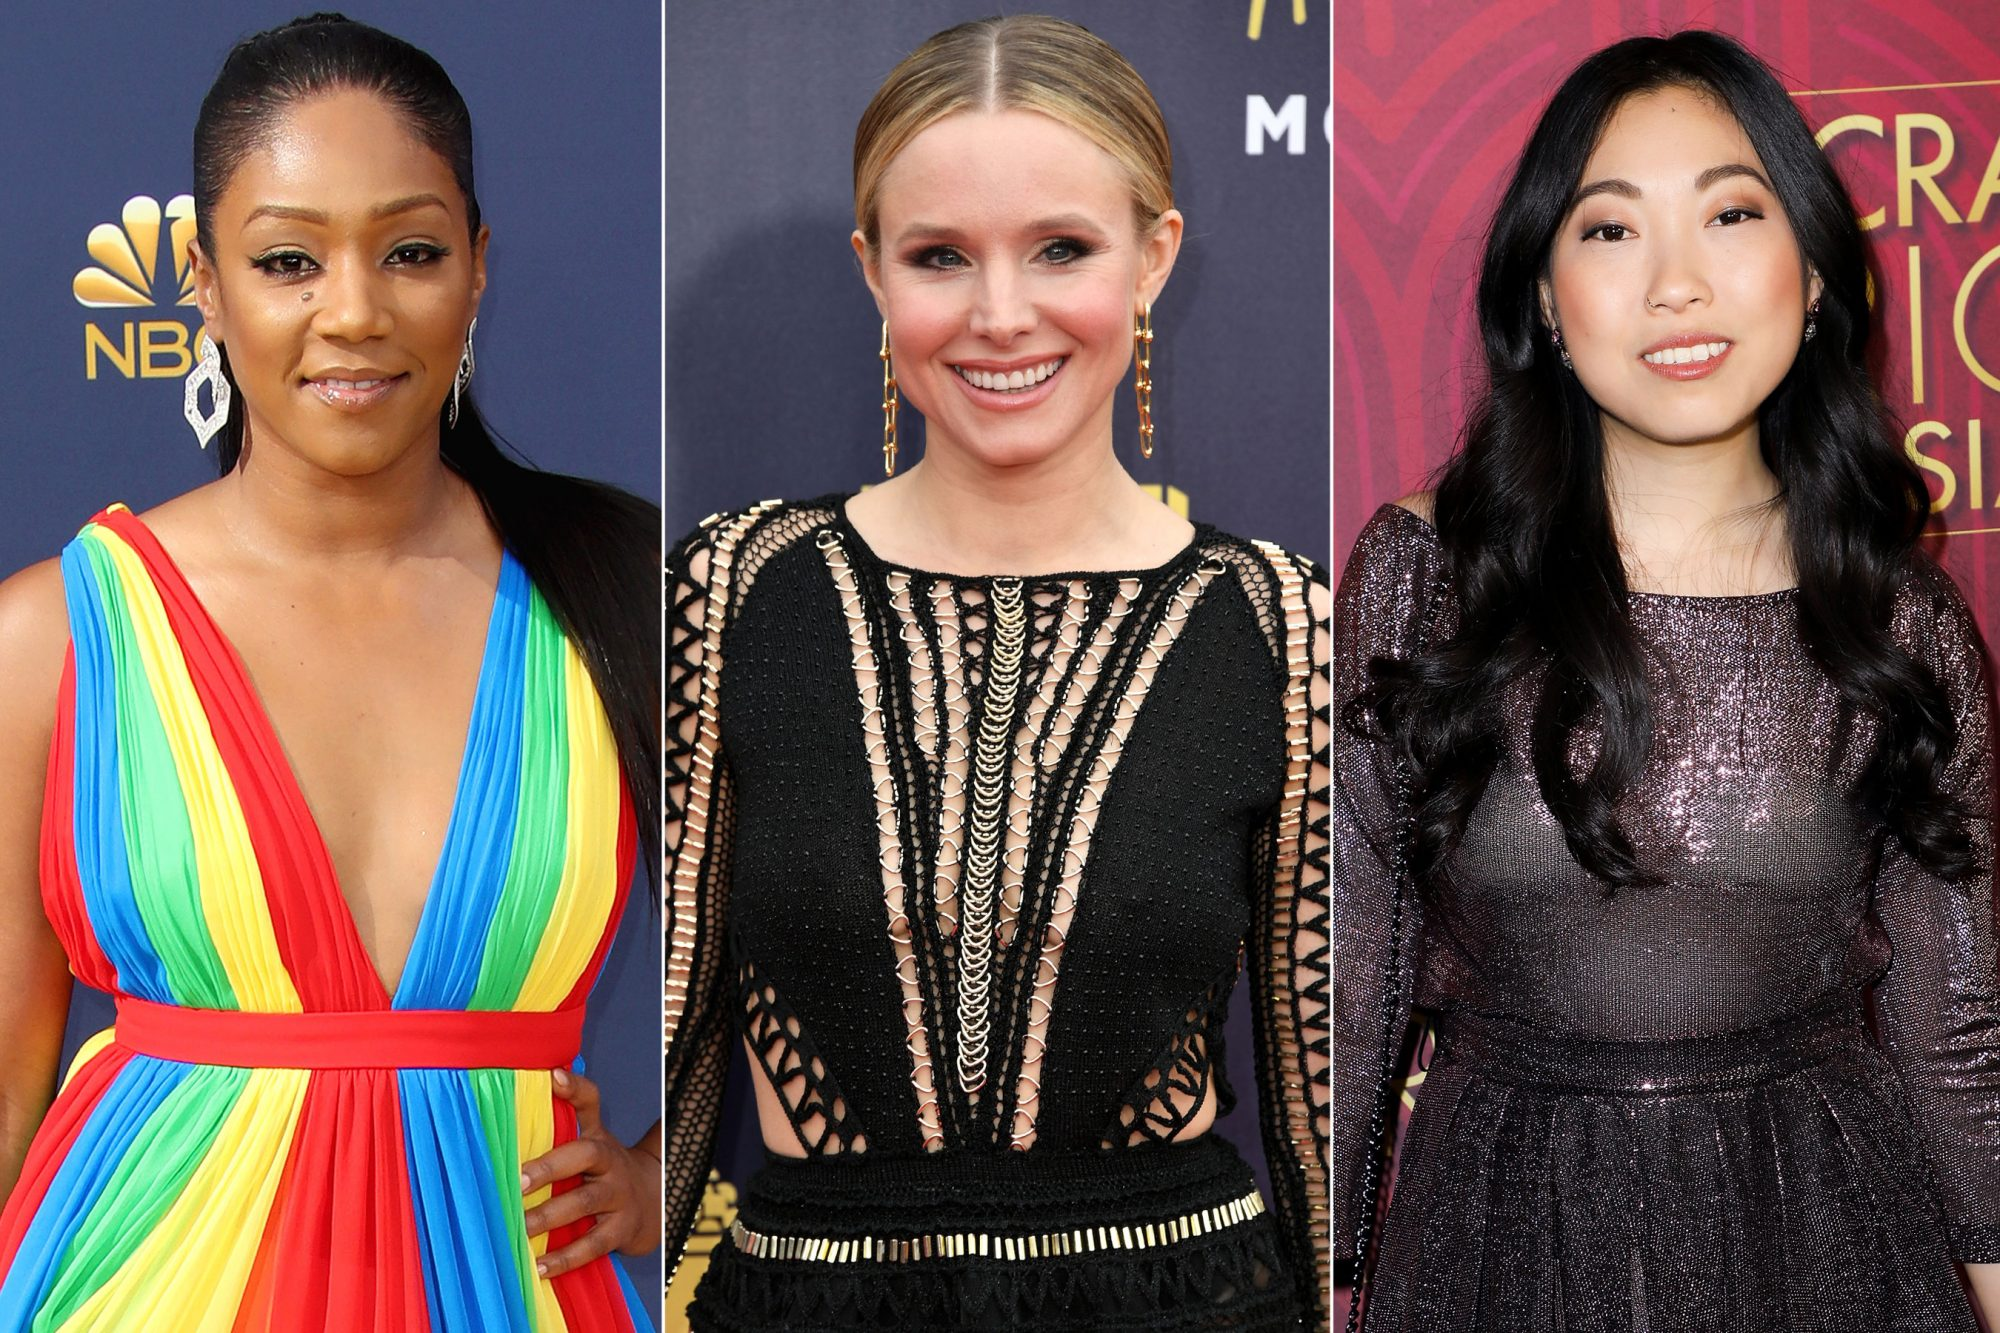 Tiffany-Haddish,-Kristen-Bell,-and-Awkwafina